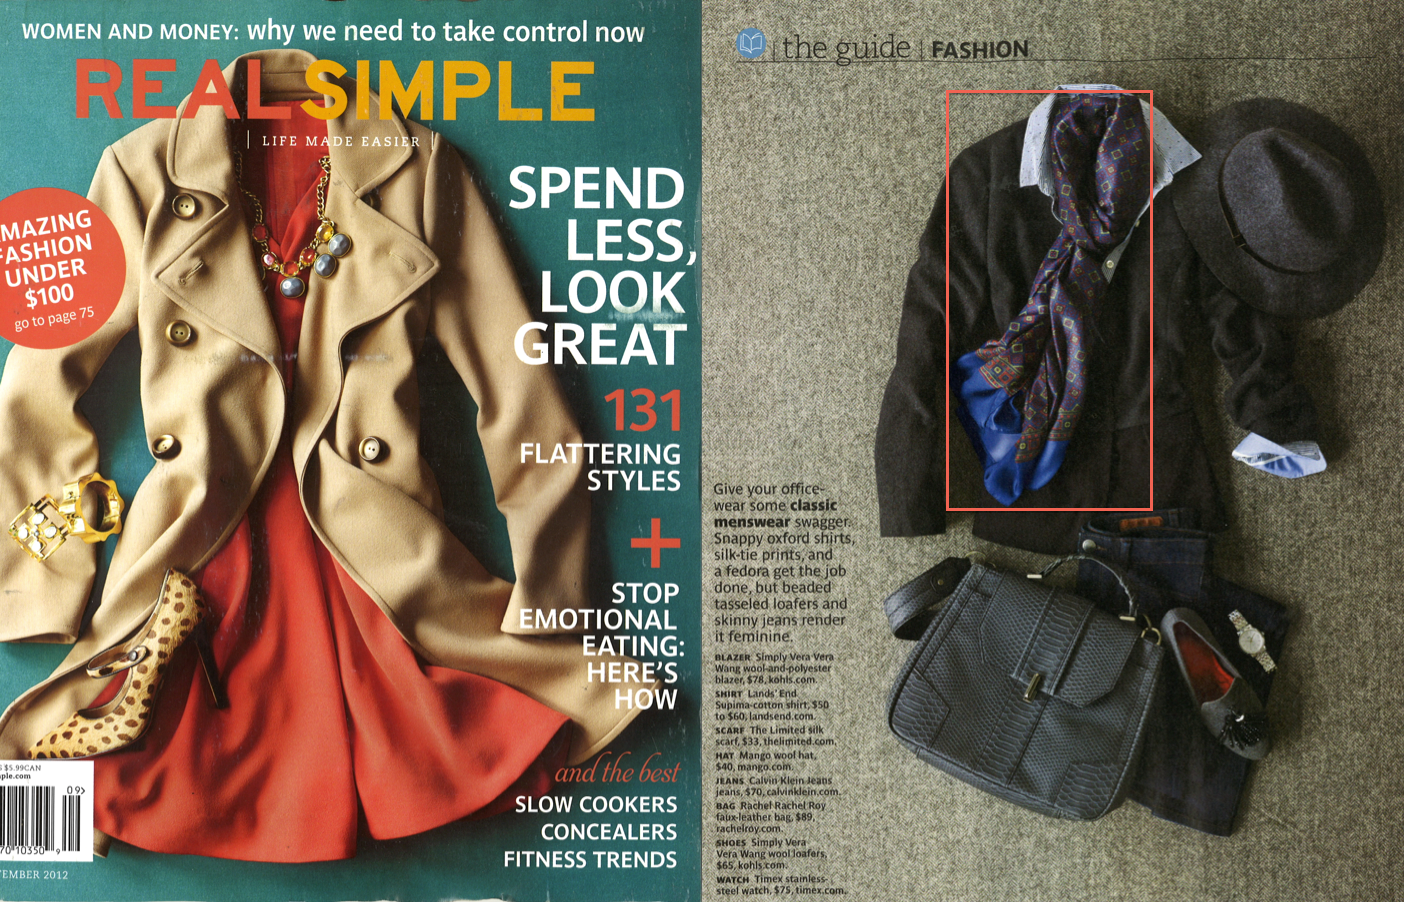 The Limited's Silk Scarf featured in the September issue of Real Simple